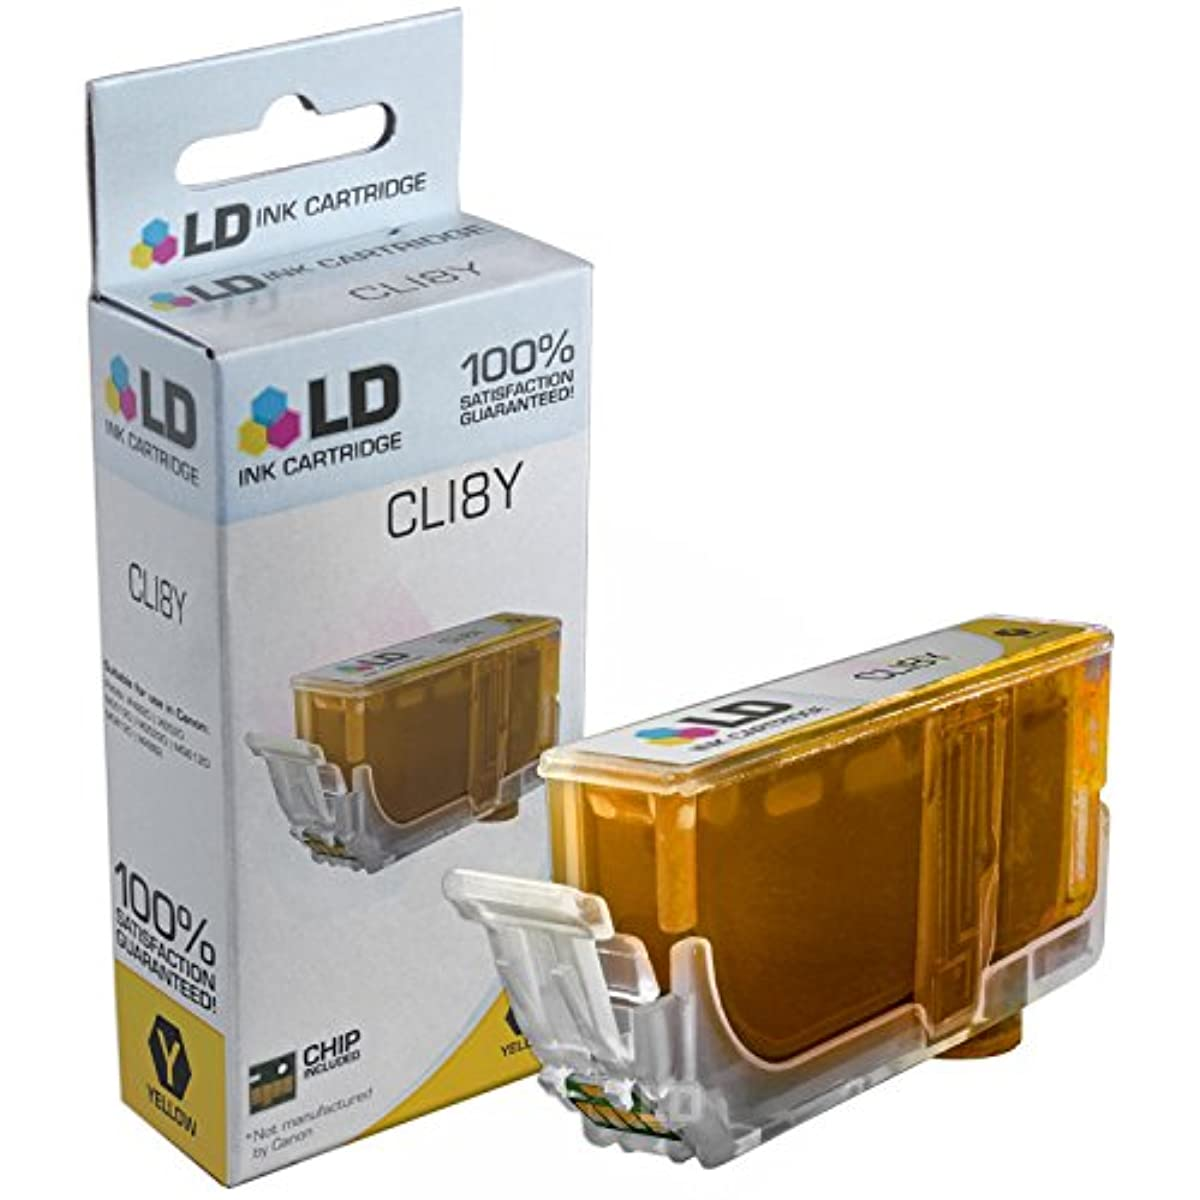 LD Compatible Ink Cartridge Replacement for Canon CLI8Y 0623B002 (Yellow) r49896292